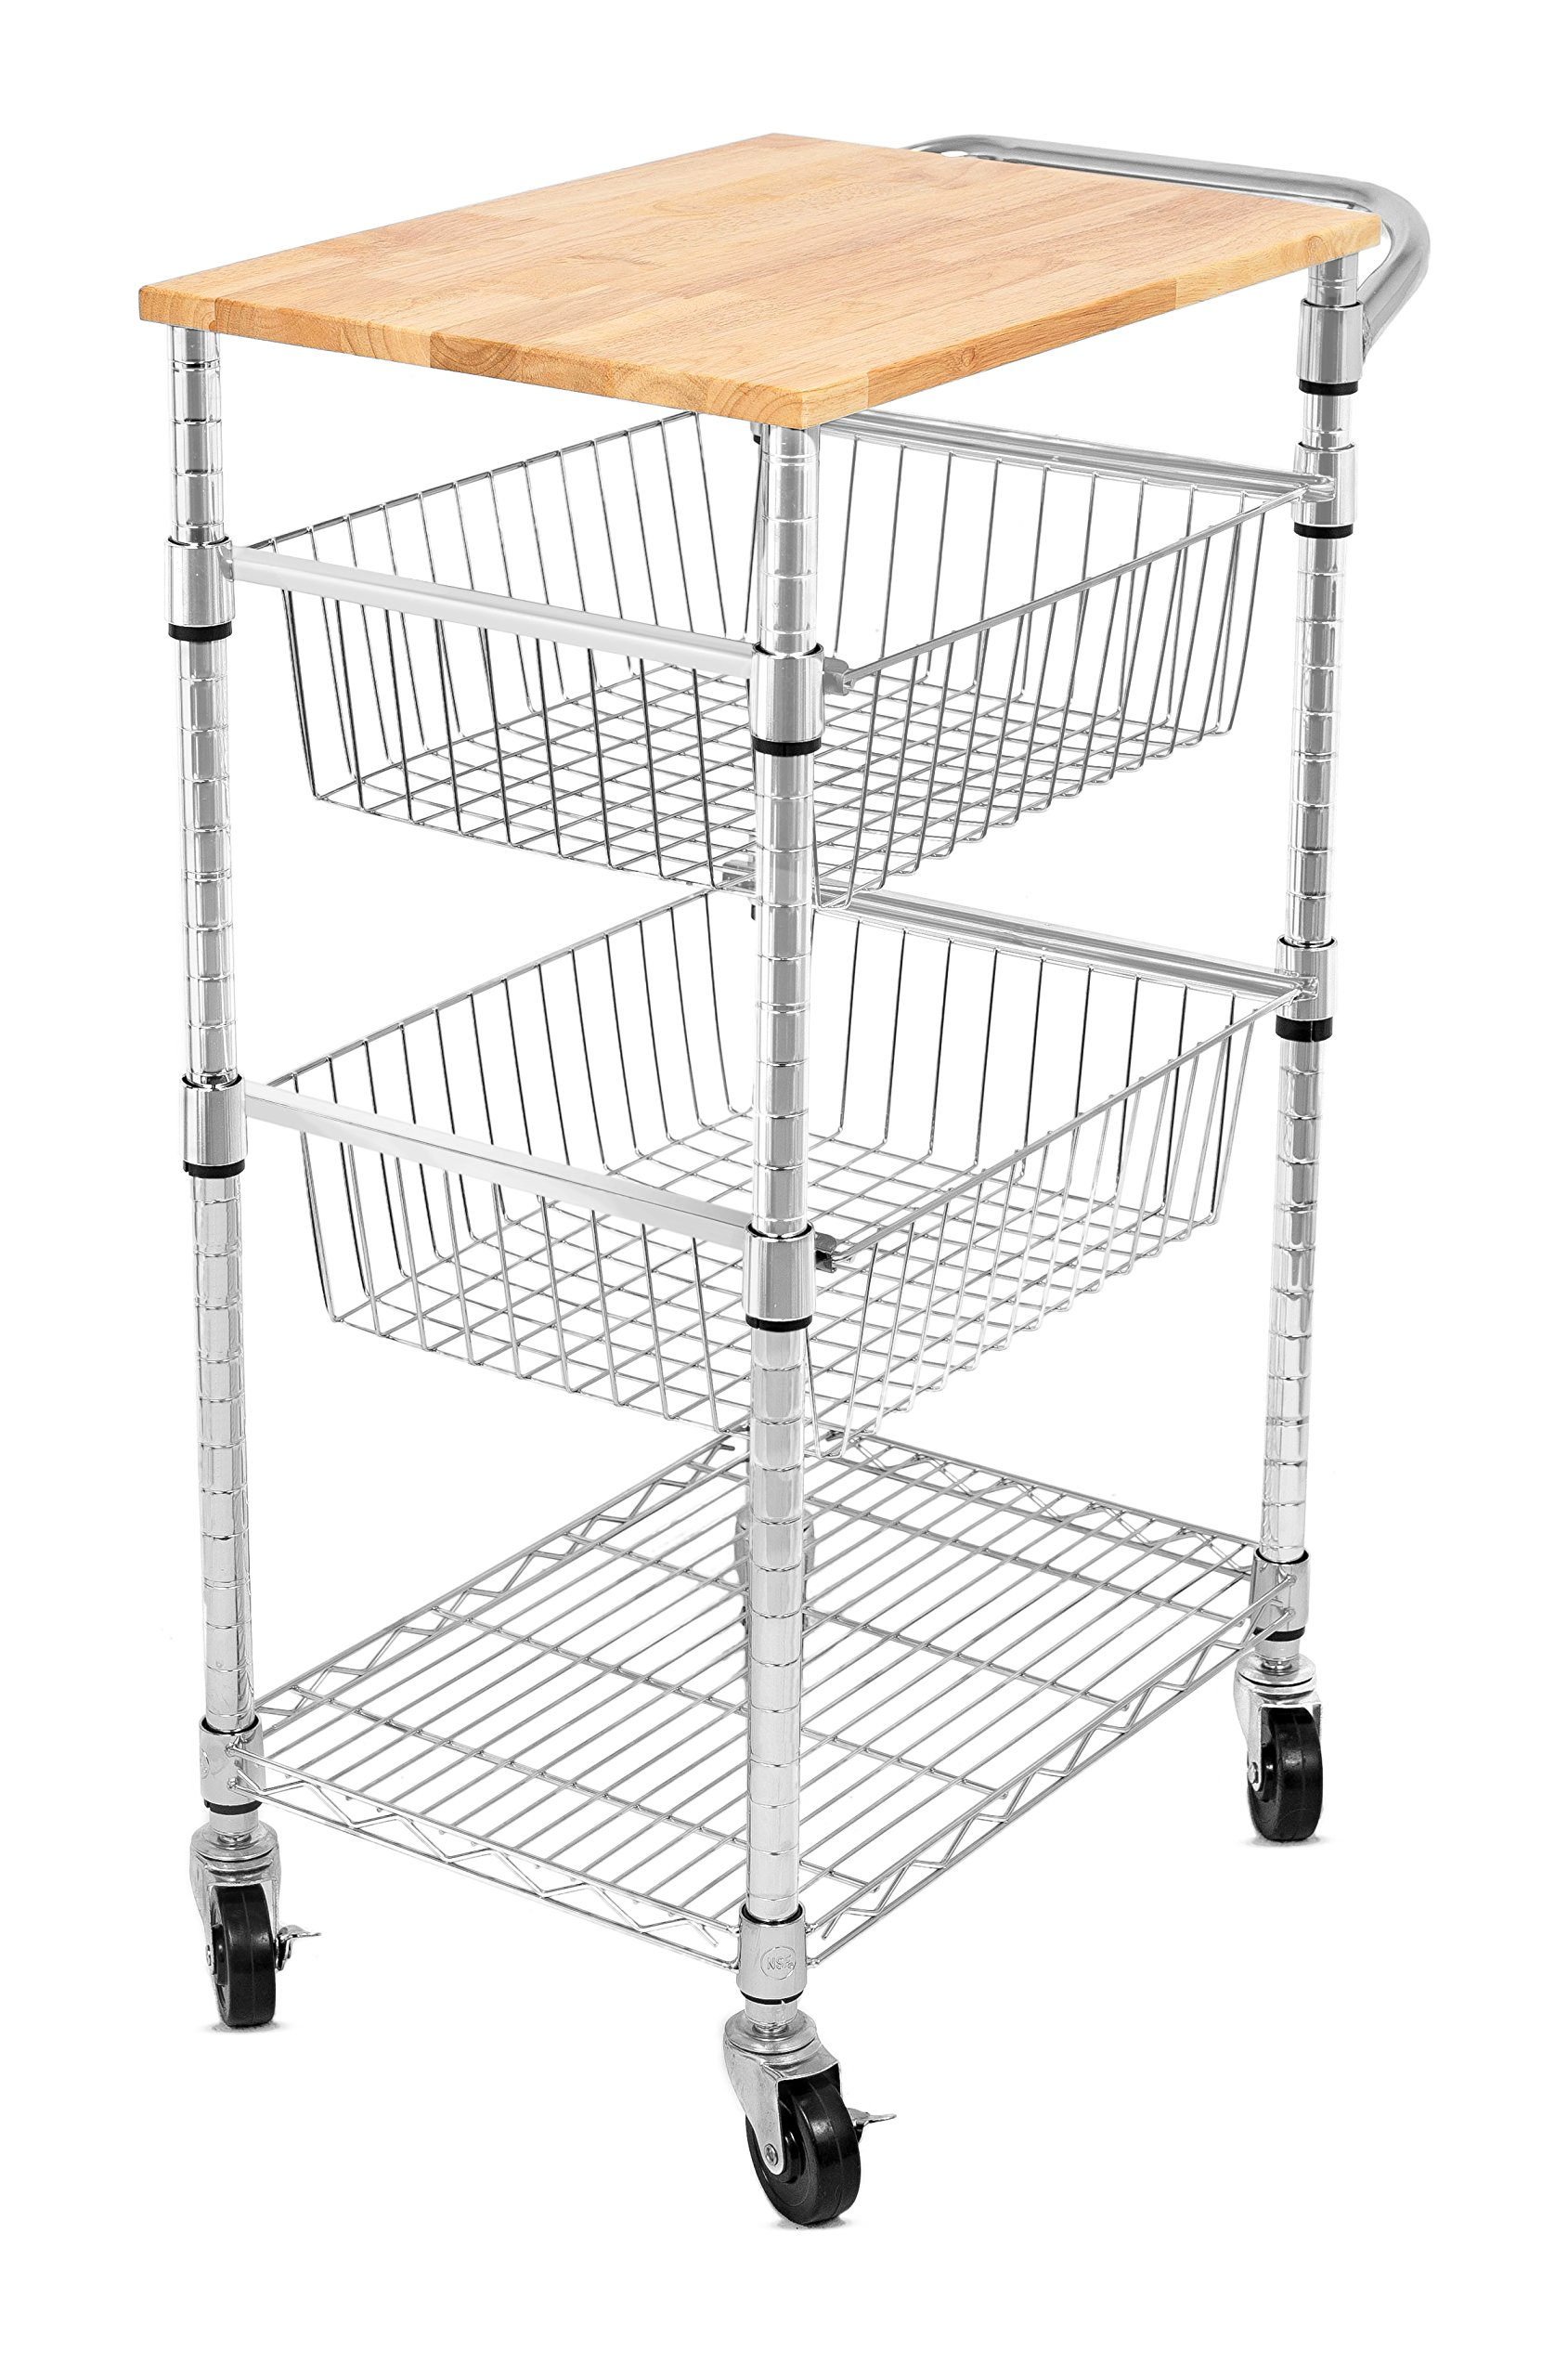 Internet's Best 3-Tier Kitchen Cart with Wire Baskets - Kitchen Island Trolley with Locking Wheels - Removable Cutting Board - 2 Sliding Wire Baskets for Cooking Utensils or Food Storage